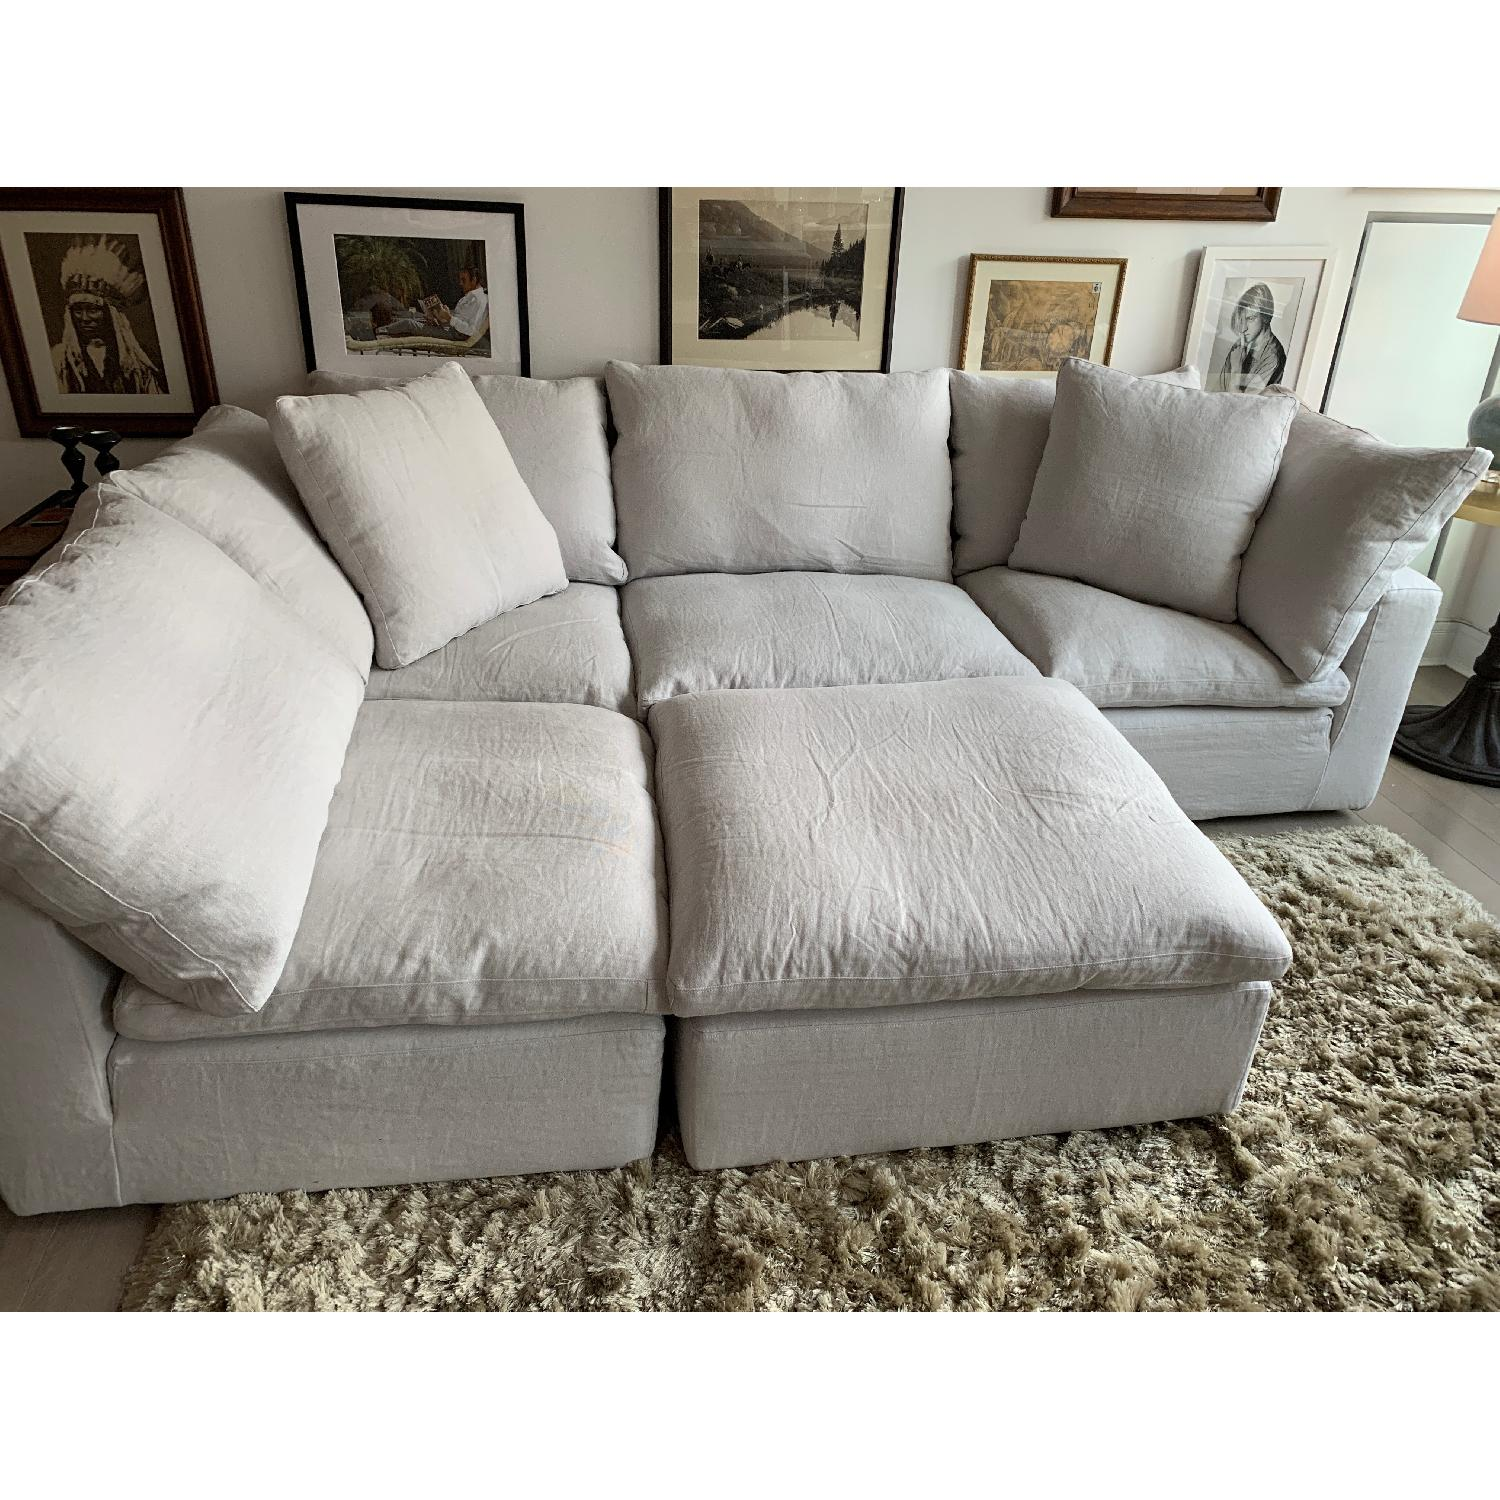 Super Restoration Hardware Cloud Modular Chaise Sectional Ottoman Caraccident5 Cool Chair Designs And Ideas Caraccident5Info